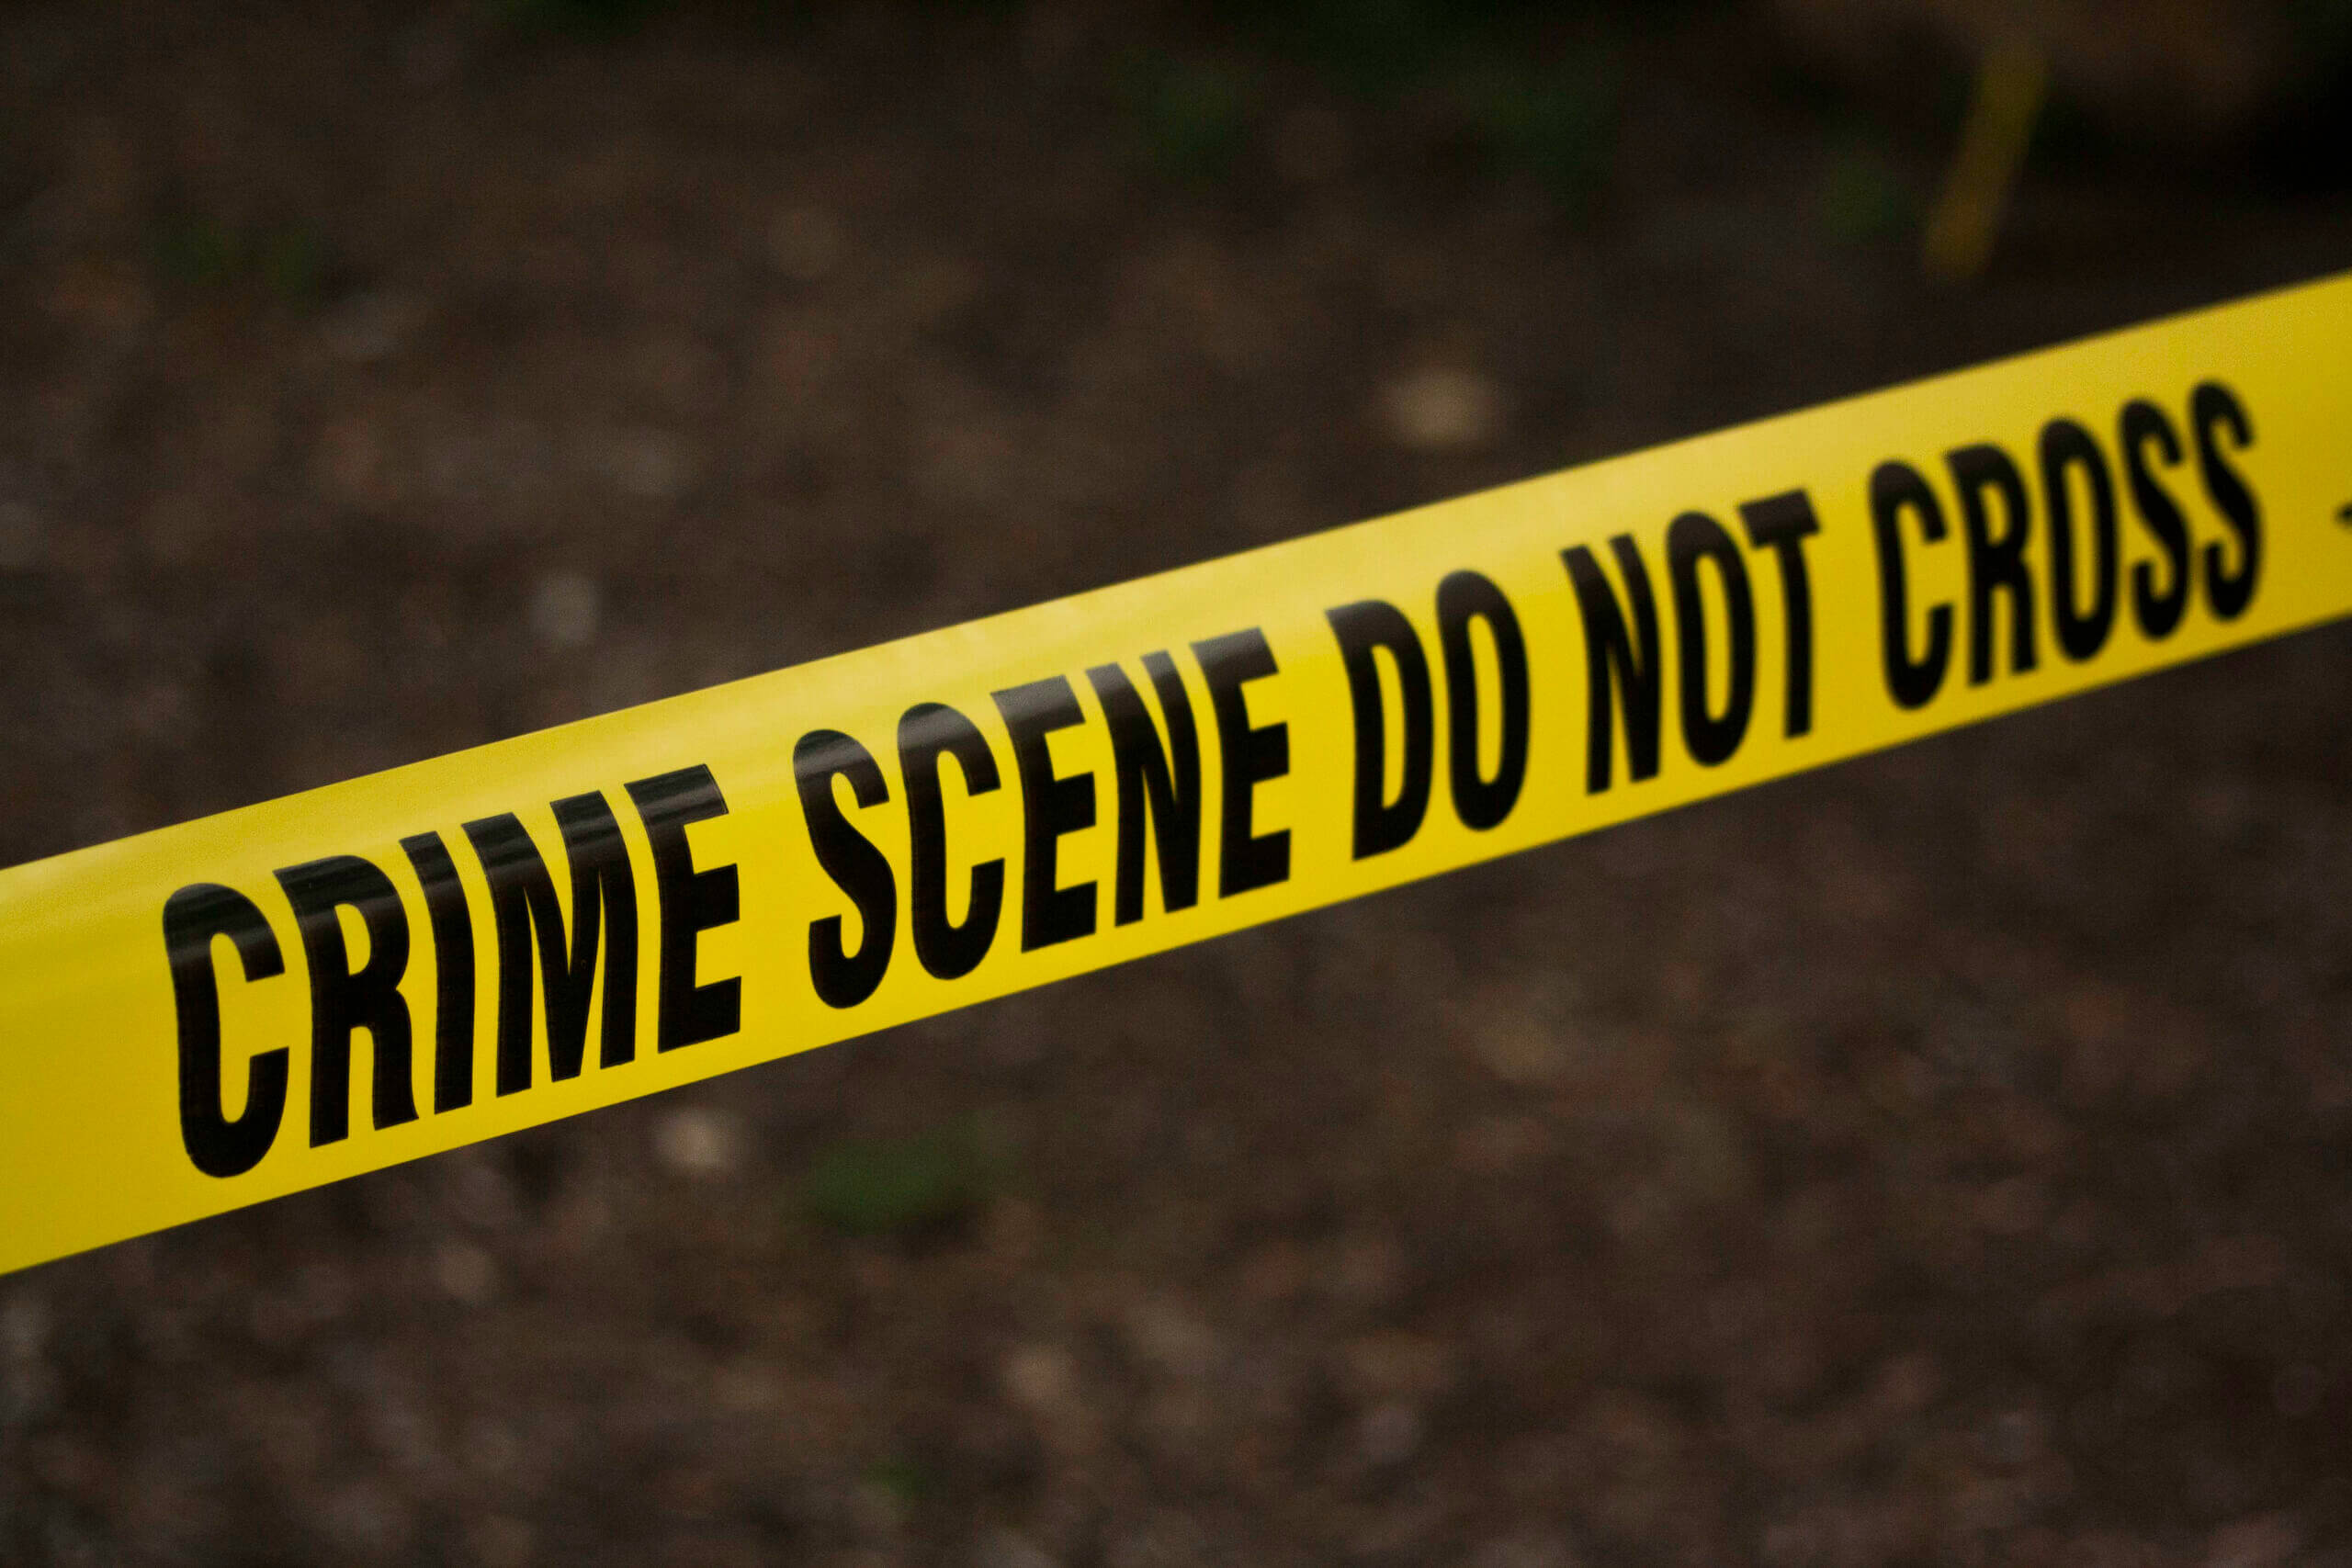 Army General murdered in Maridi County